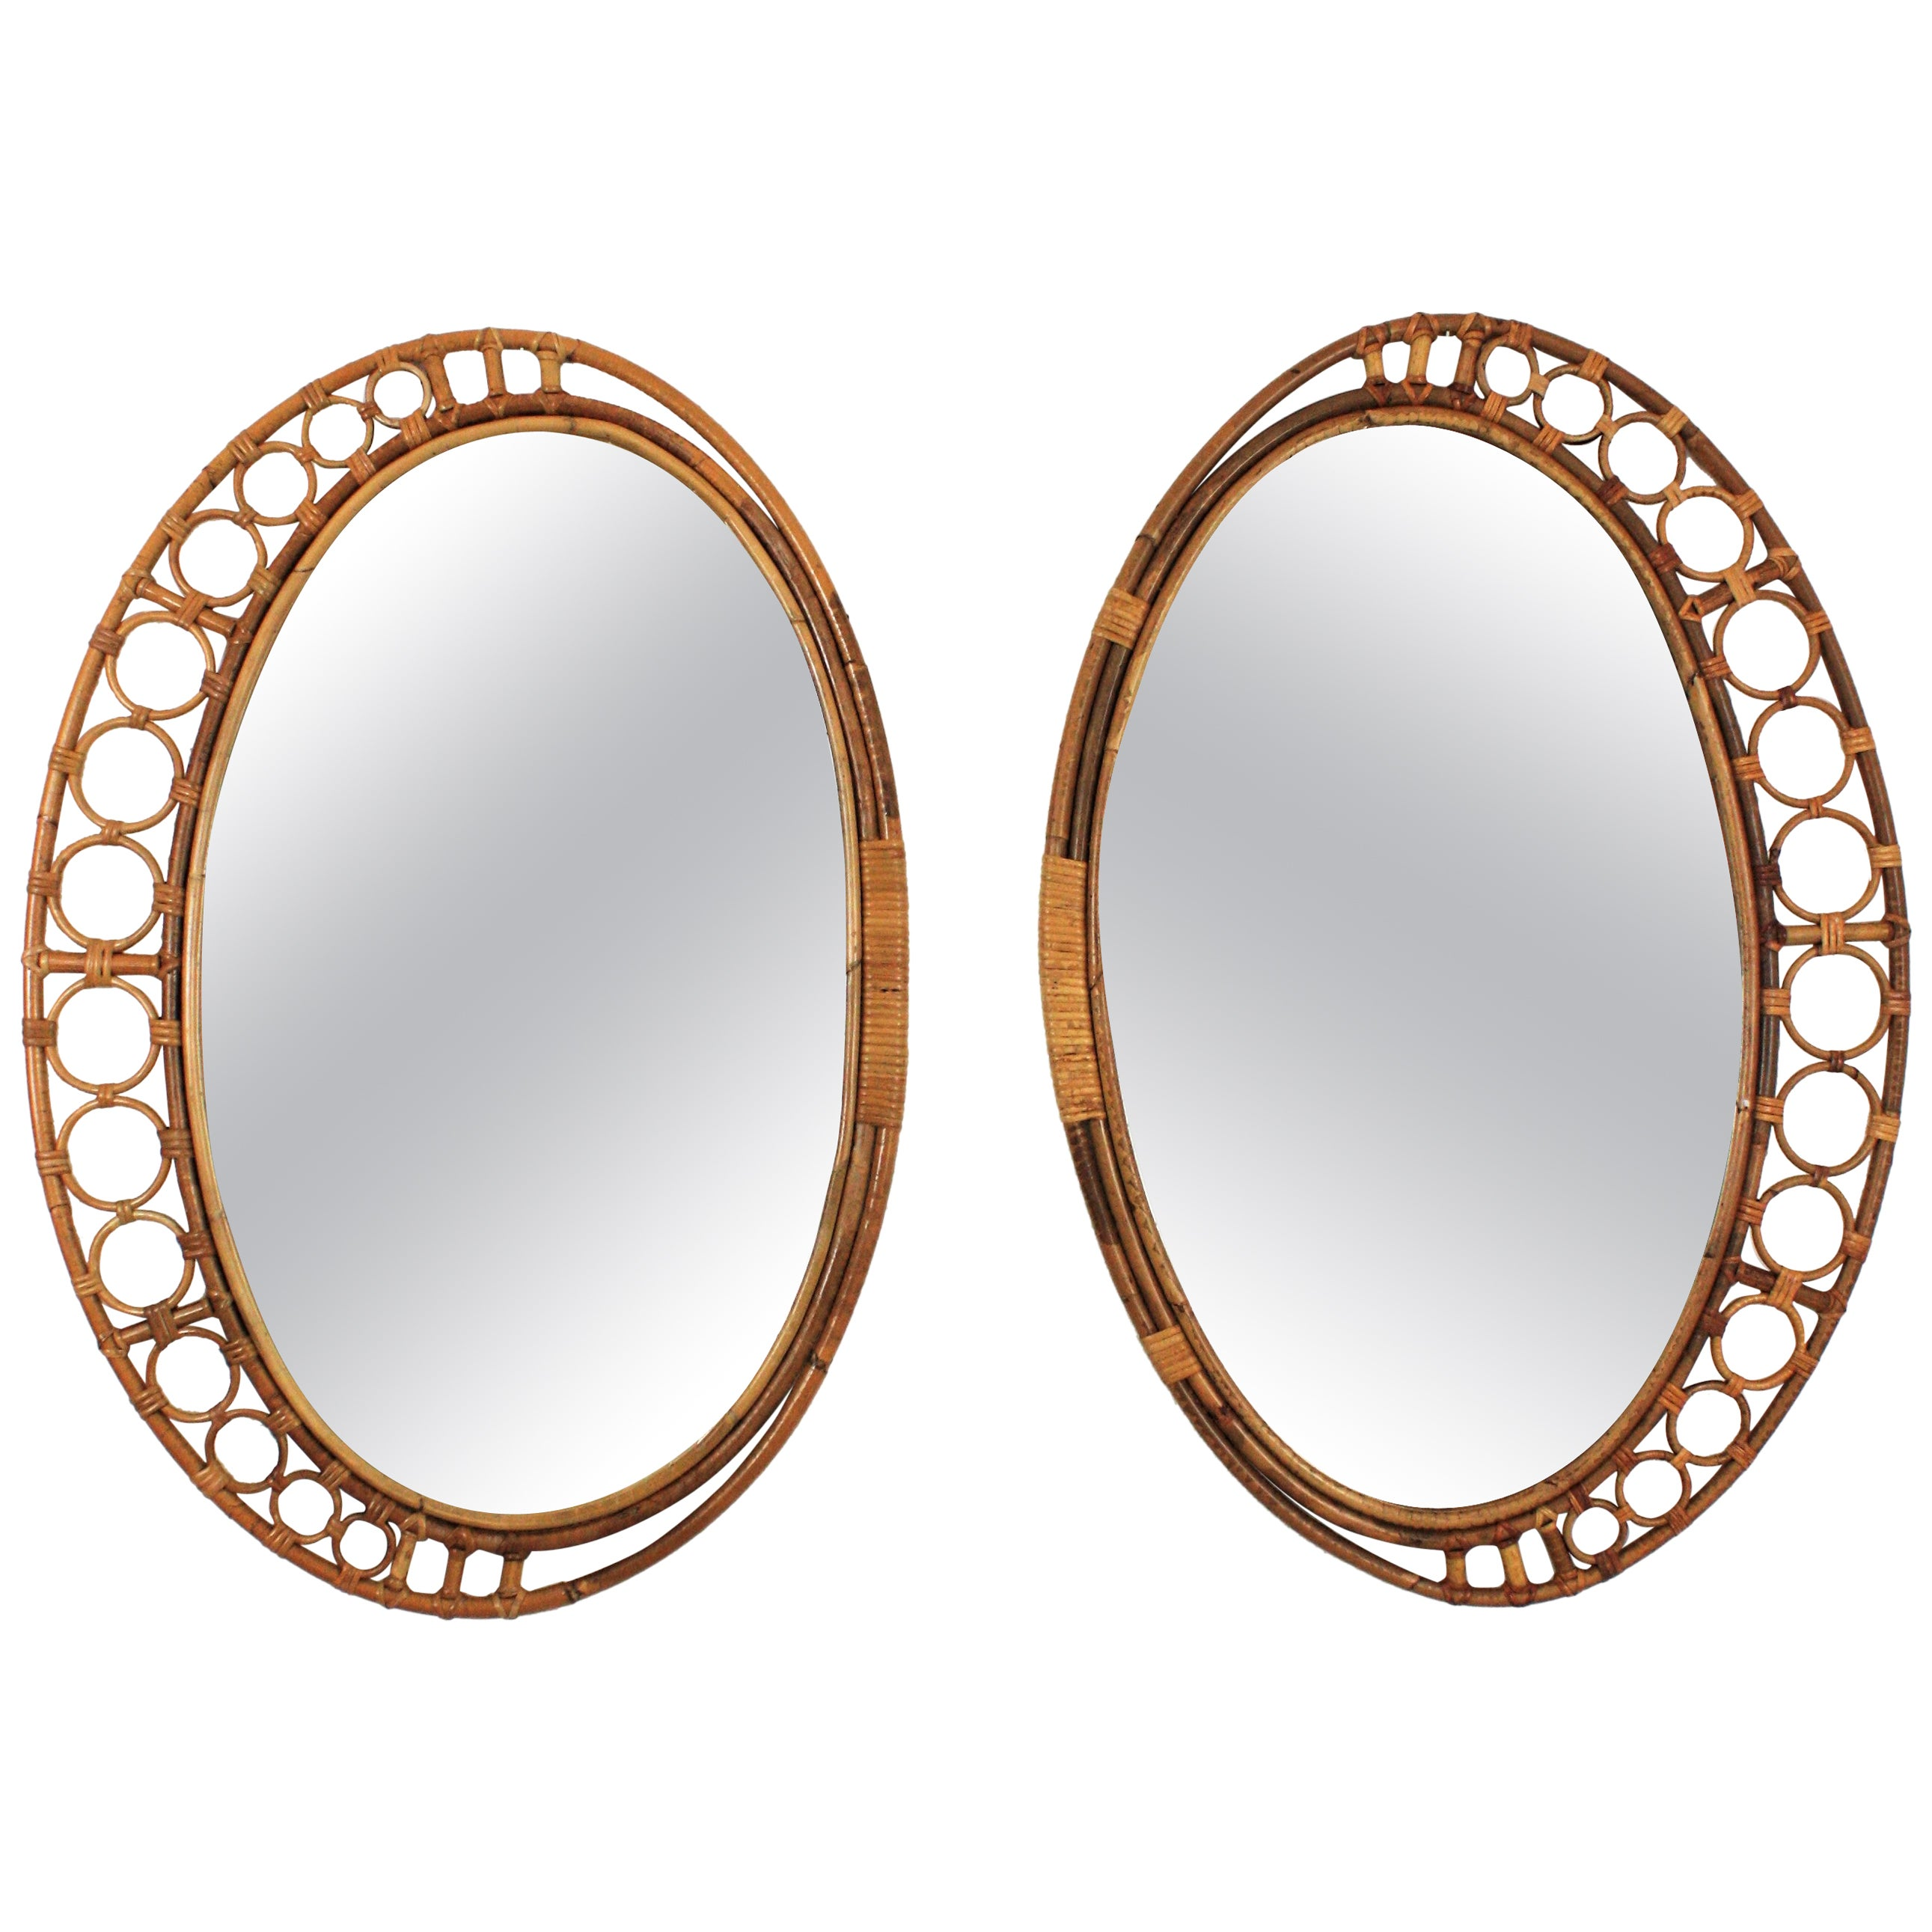 Pair of Bamboo and Rattan Oval Mirrors from Spain, 1960s